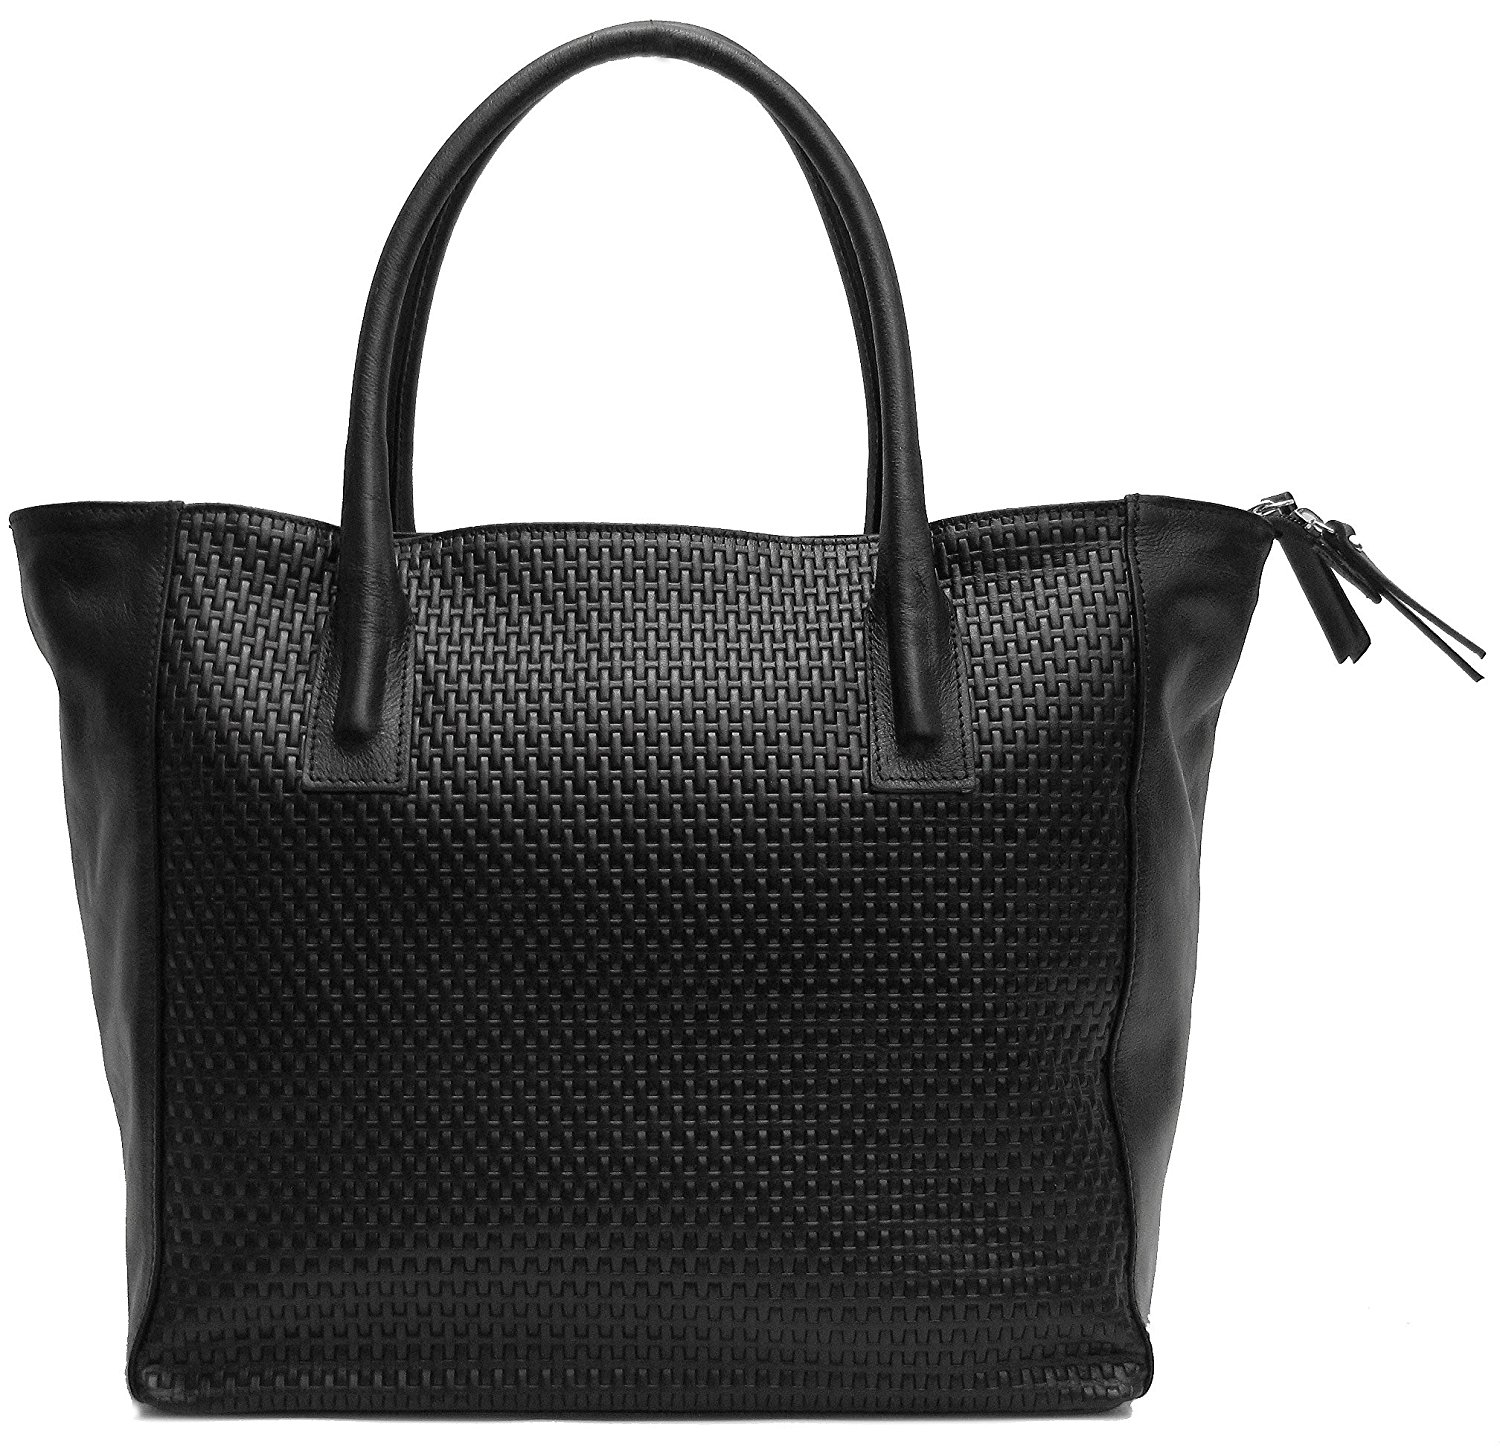 0dc6812424c7 Cheap Firenze Leather, find Firenze Leather deals on line at Alibaba.com